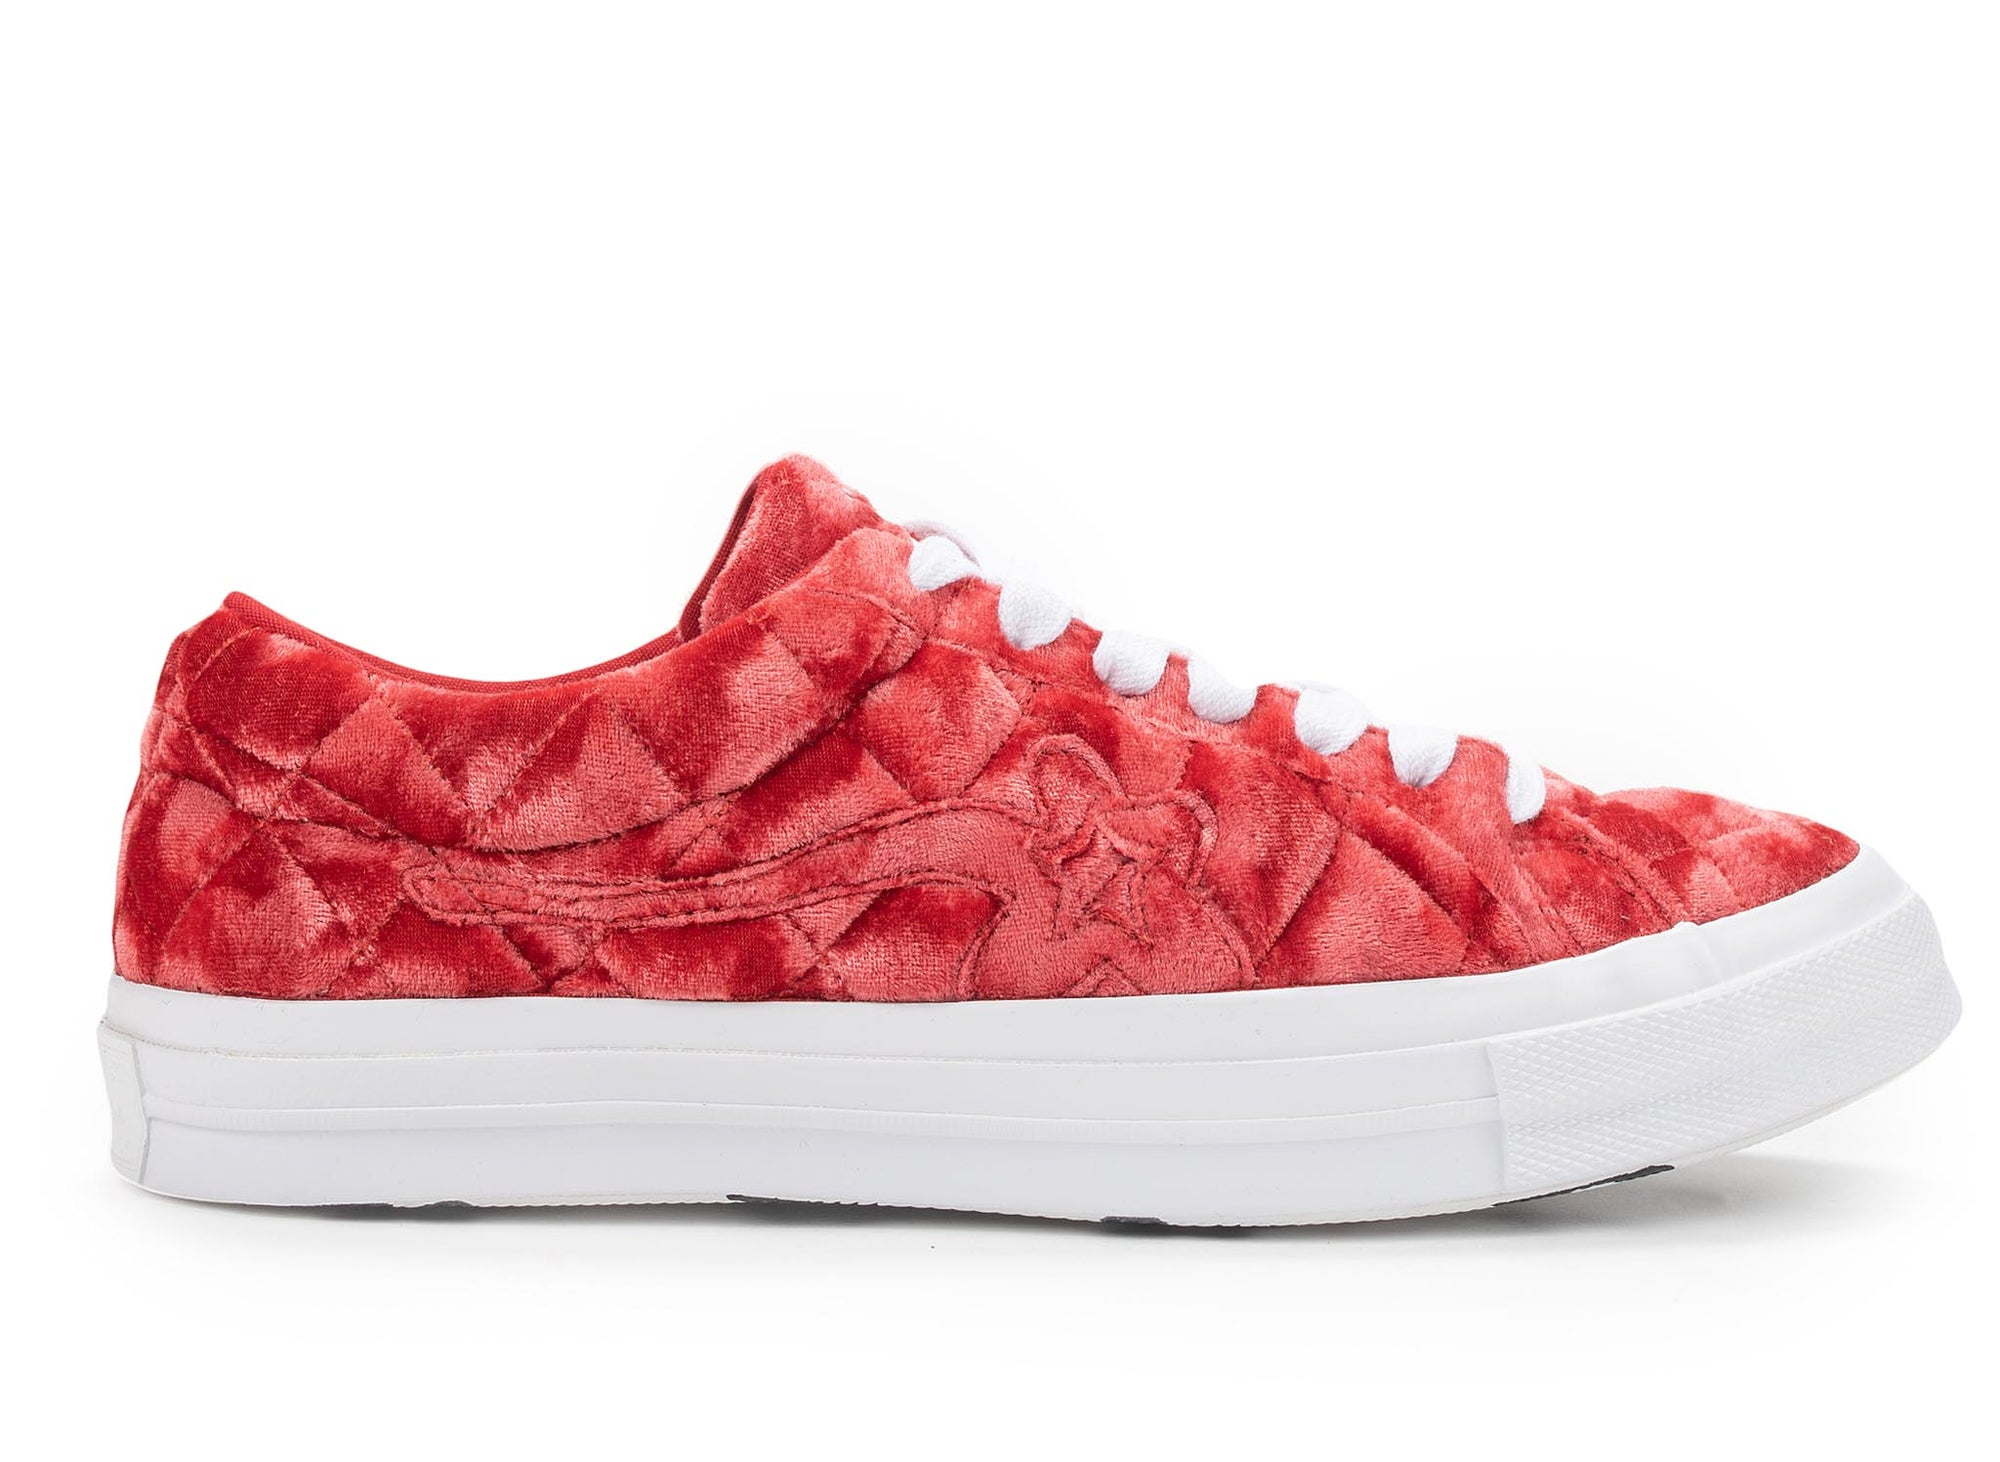 Converse One Star Ox Golf Le Fleur TTC Quilted Velvet 'Barbados Cherry'